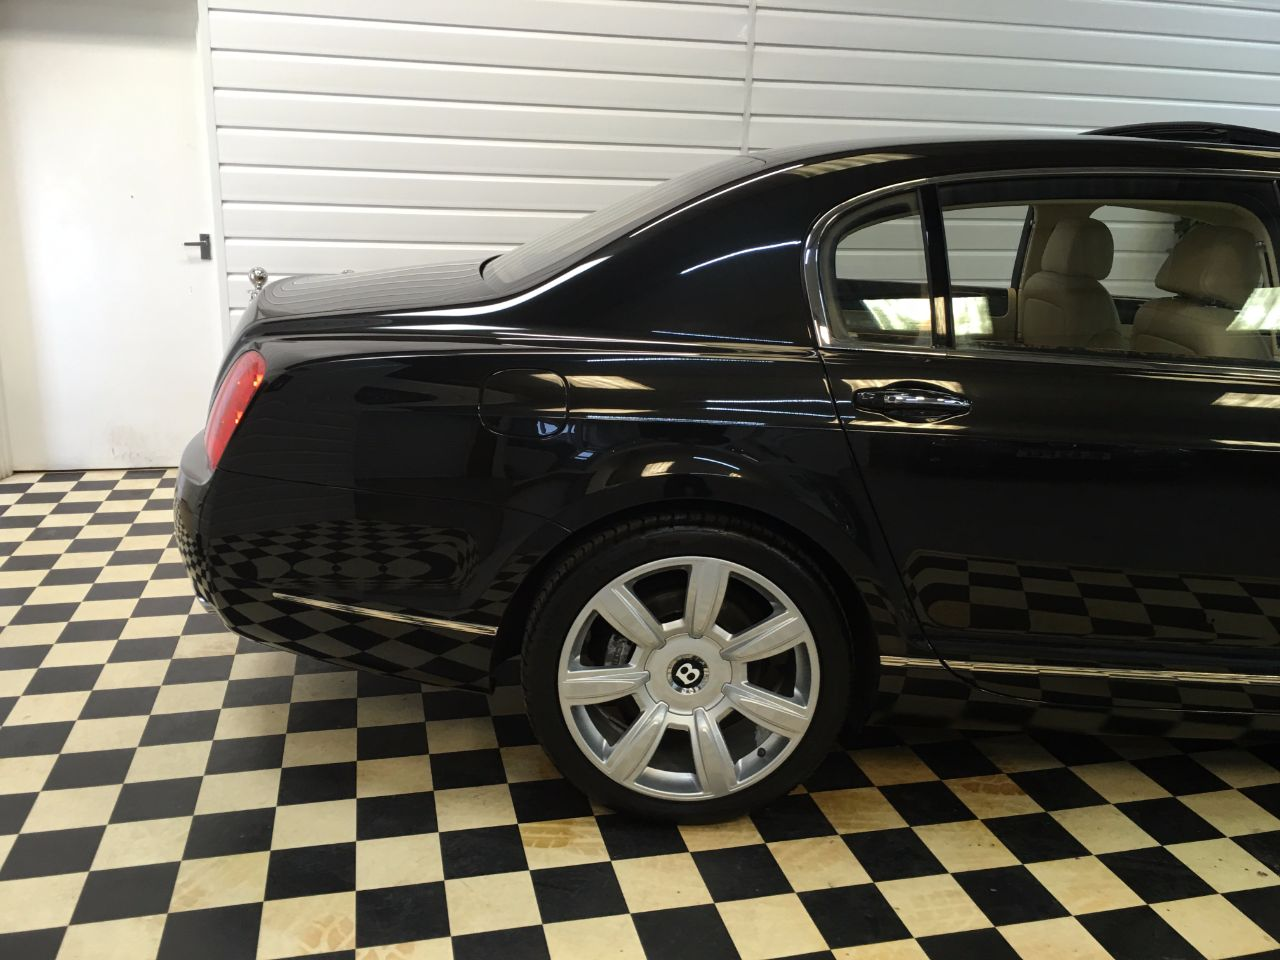 Bentley Continental Flying Spur 6.0 W12 4dr Auto Saloon Petrol Black